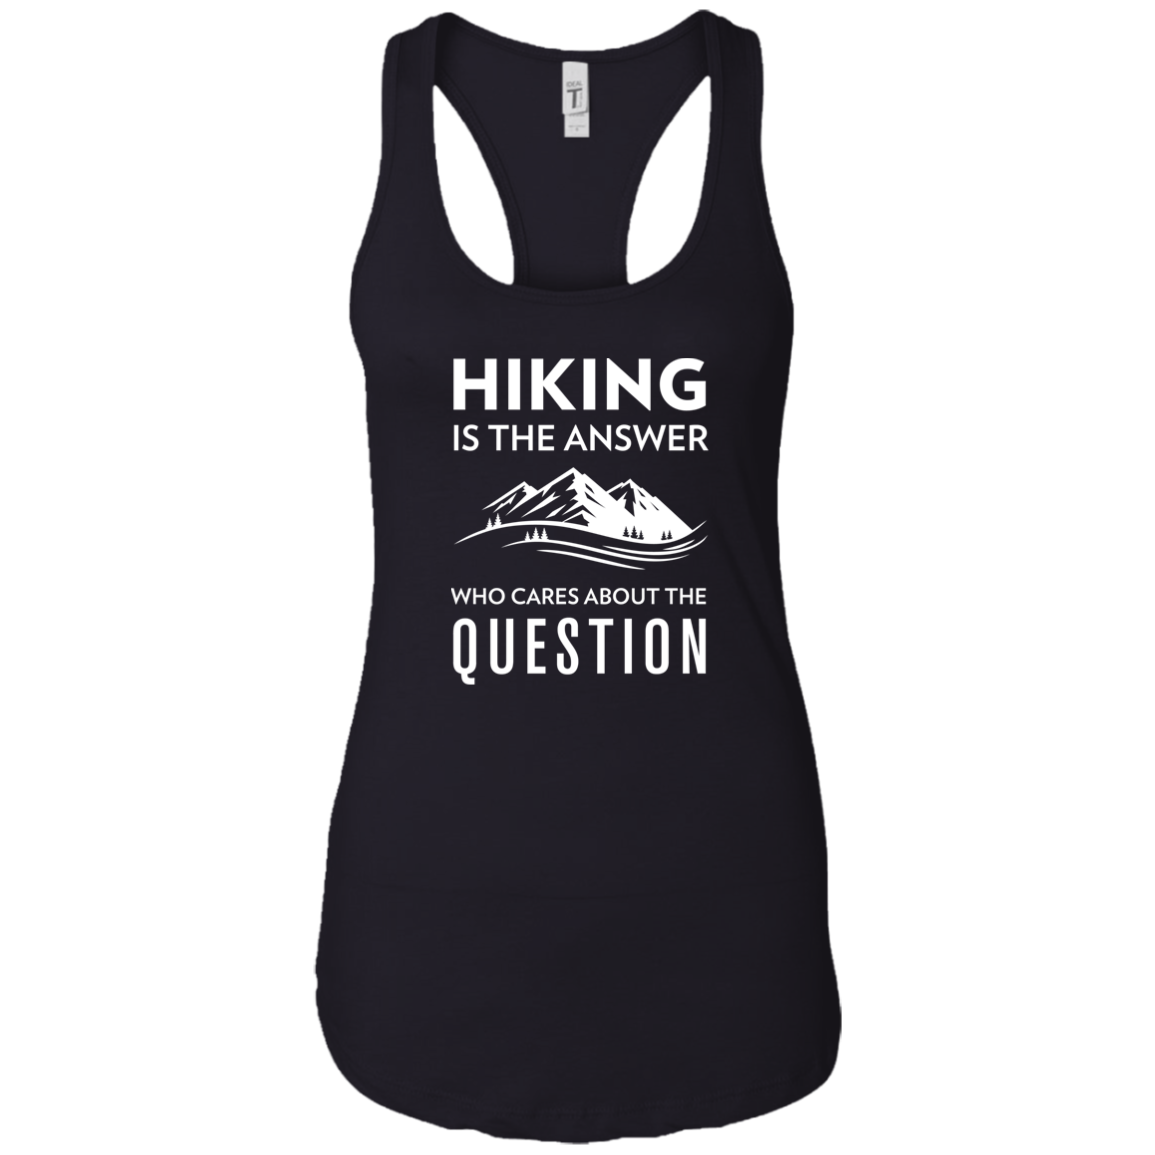 Hiking Is The Answer, Who Cares About The Question Tank Top (Women's)